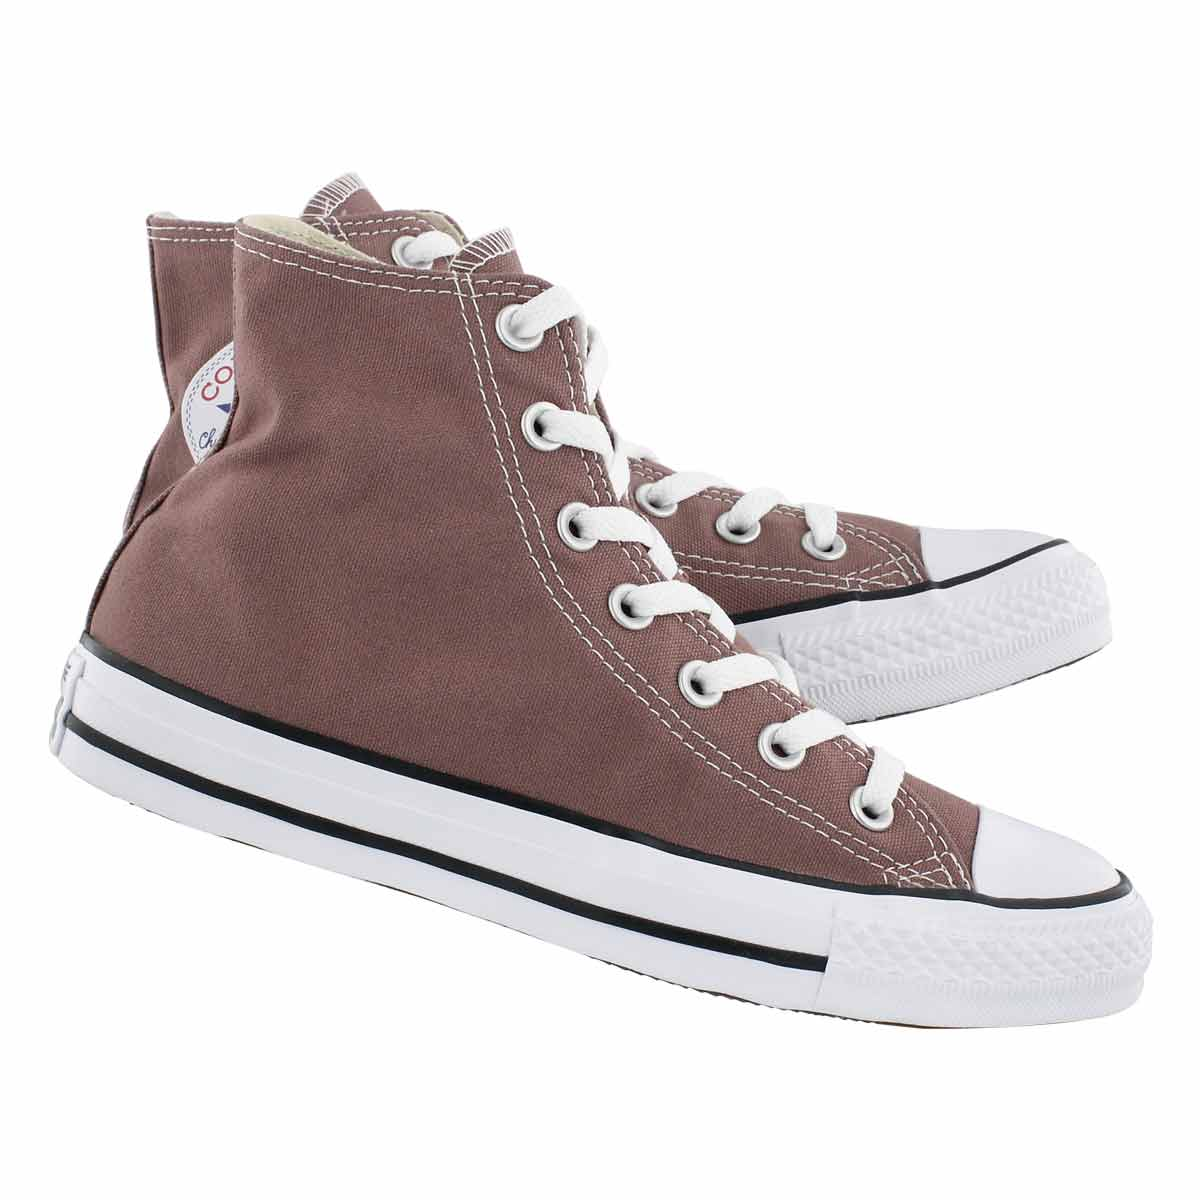 Lds CT AS Seasonal saddle high top